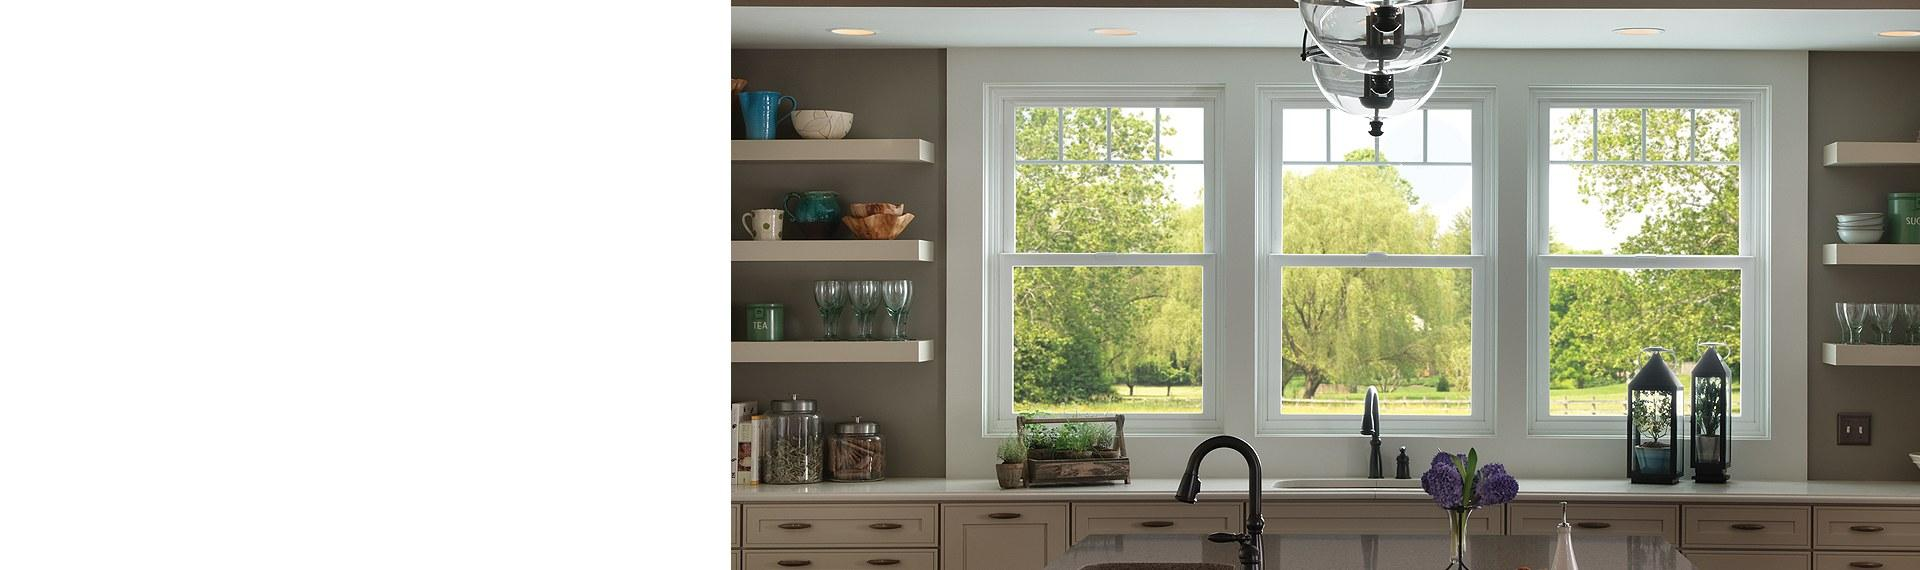 Tuscany Series vinyl single hung windows with valance grid